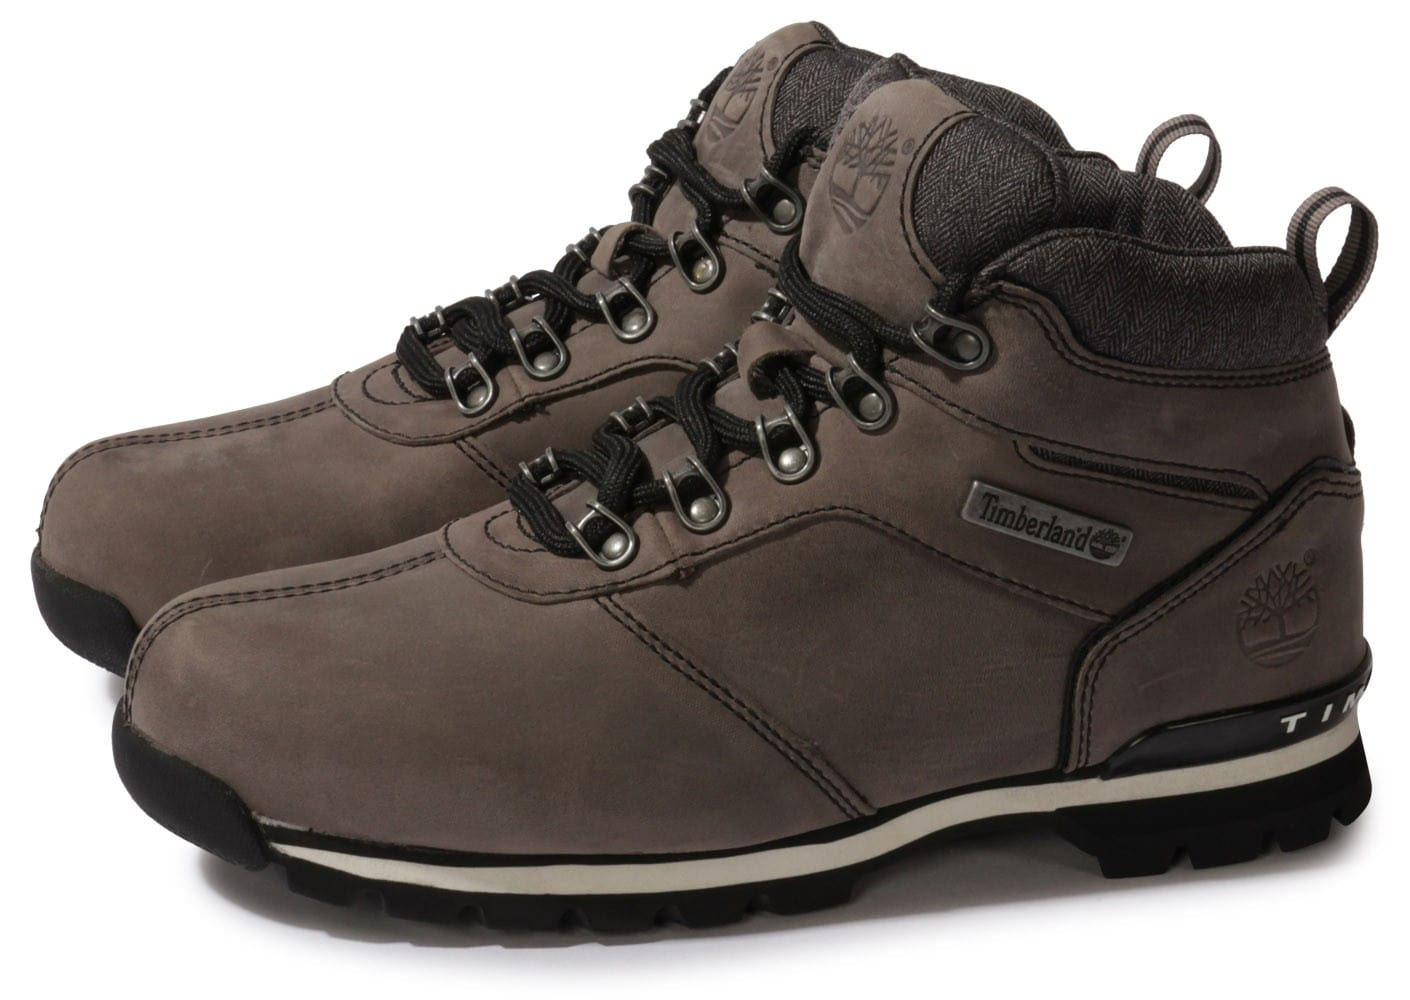 timberland splitrock 2 gris ch taigne chaussures homme chausport. Black Bedroom Furniture Sets. Home Design Ideas